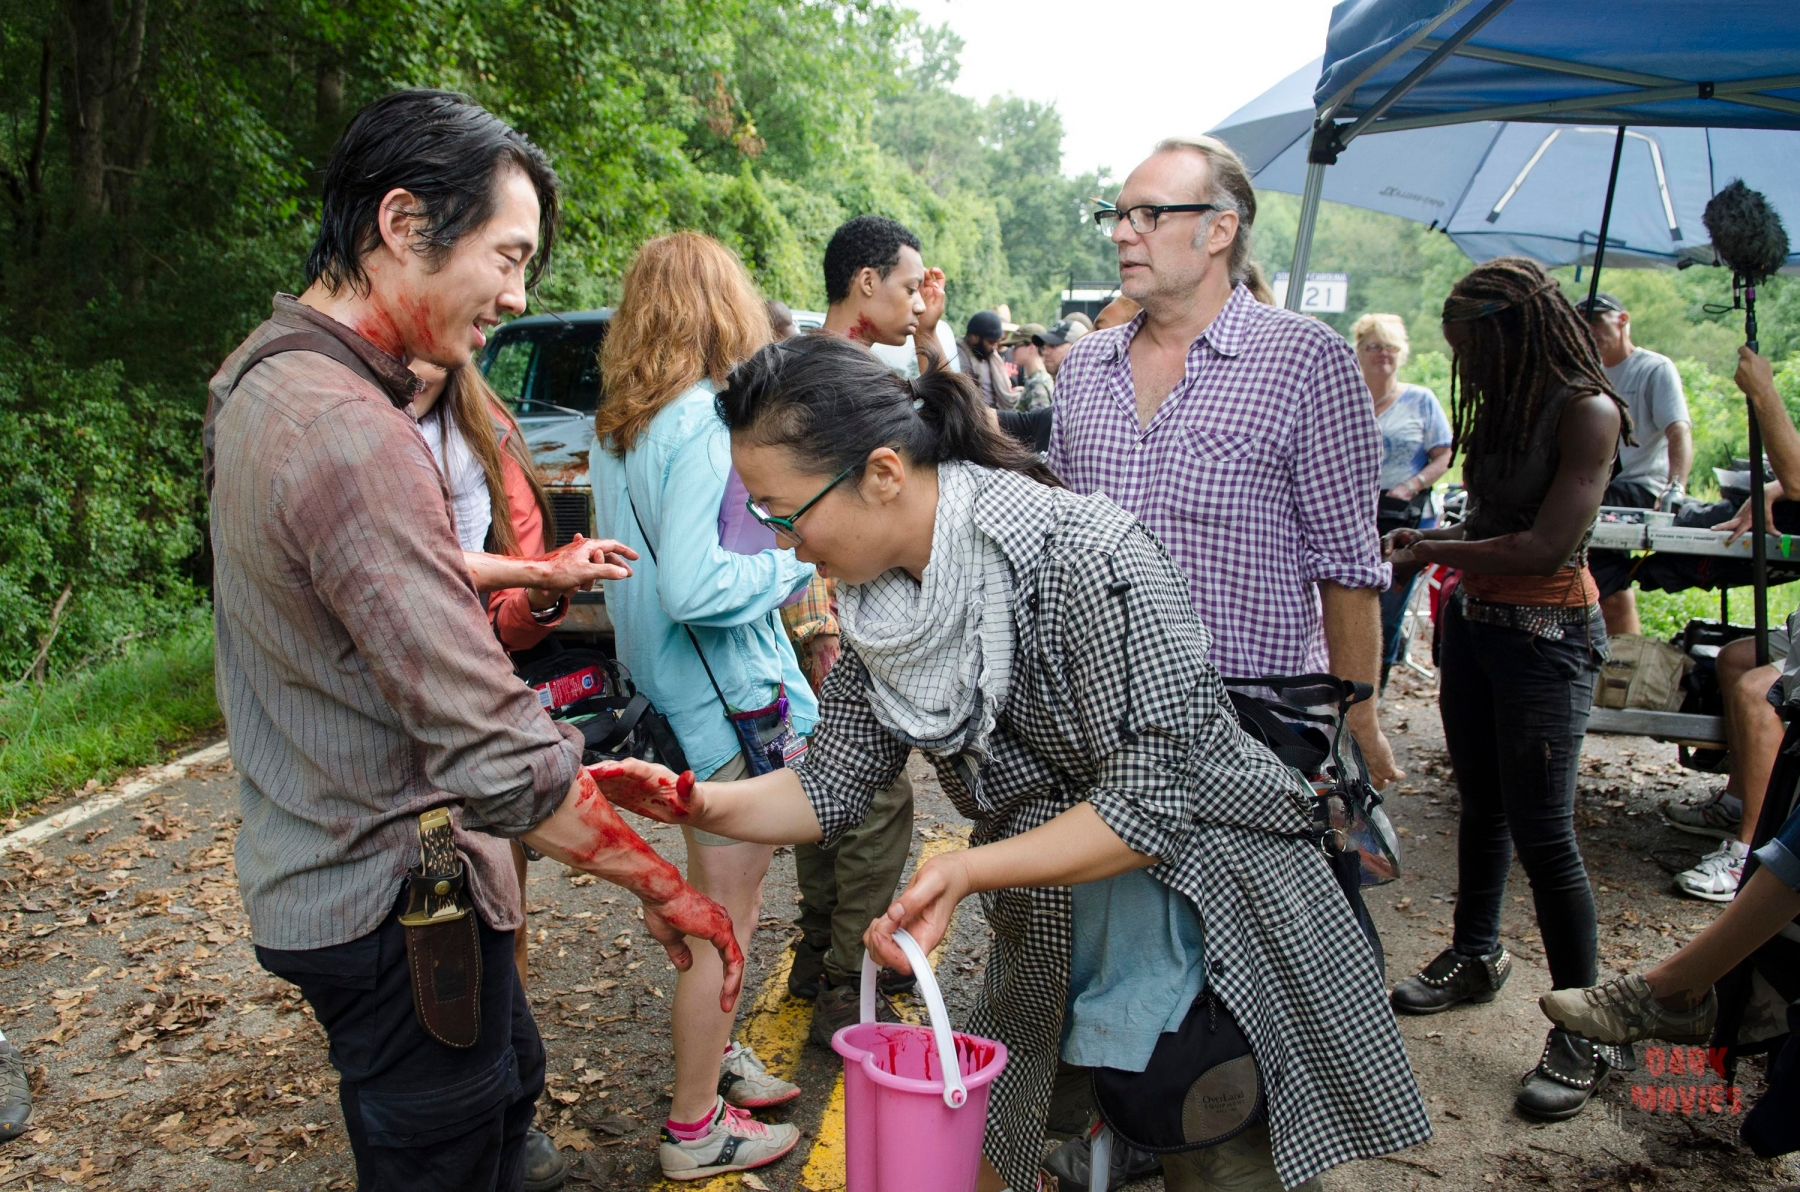 Steven Yeun - The Walking Dead _ Season 5, Episode 9 _ BTS - Photo Credit: Gene Page/AMC, Żywe trupy 5, Walking Dead 5, The, serial grozy, USA 2014, reż. Alanna Masterson, Andrew J. West, Andrew Lincoln, Chad L. Coleman, Chandler Riggs, Christian Serratos, Danai Gurira, Emily Kinney, Josh McDermitt, Lauren Cohan, Lawrence Gilliard Jr., Melissa McBride, Michael Cudlitz, Norman Reedus, Sonequa Martin-Green, Steven Yeun, Bill Gierhart, David Boyd, Ernest R. Dickerson, Greg Nicotero, Jeffrey F. January, Michael Edison Satrazemis, Seith Mann, Christine Woods, Christopher Matthew Cook, Cullen Moss, Denise Crosby, Erik Jensen, Keisha Castle-Hughes, Lennie James, Maximiliano Hernández, Seth Gilliam, Teri Wyble, Travis Young, Tyler James Williams, scena z: Steven Yeun, SK:, , fot. FOX, Co się stało i co się dzieje, What Happened and What's Going On, odcinek, 2015, reż. Greg Nicotero, Brighton Sharbino, Chris Coy, David Morrissey, Gregory Nicotero, Kyla Kenedy